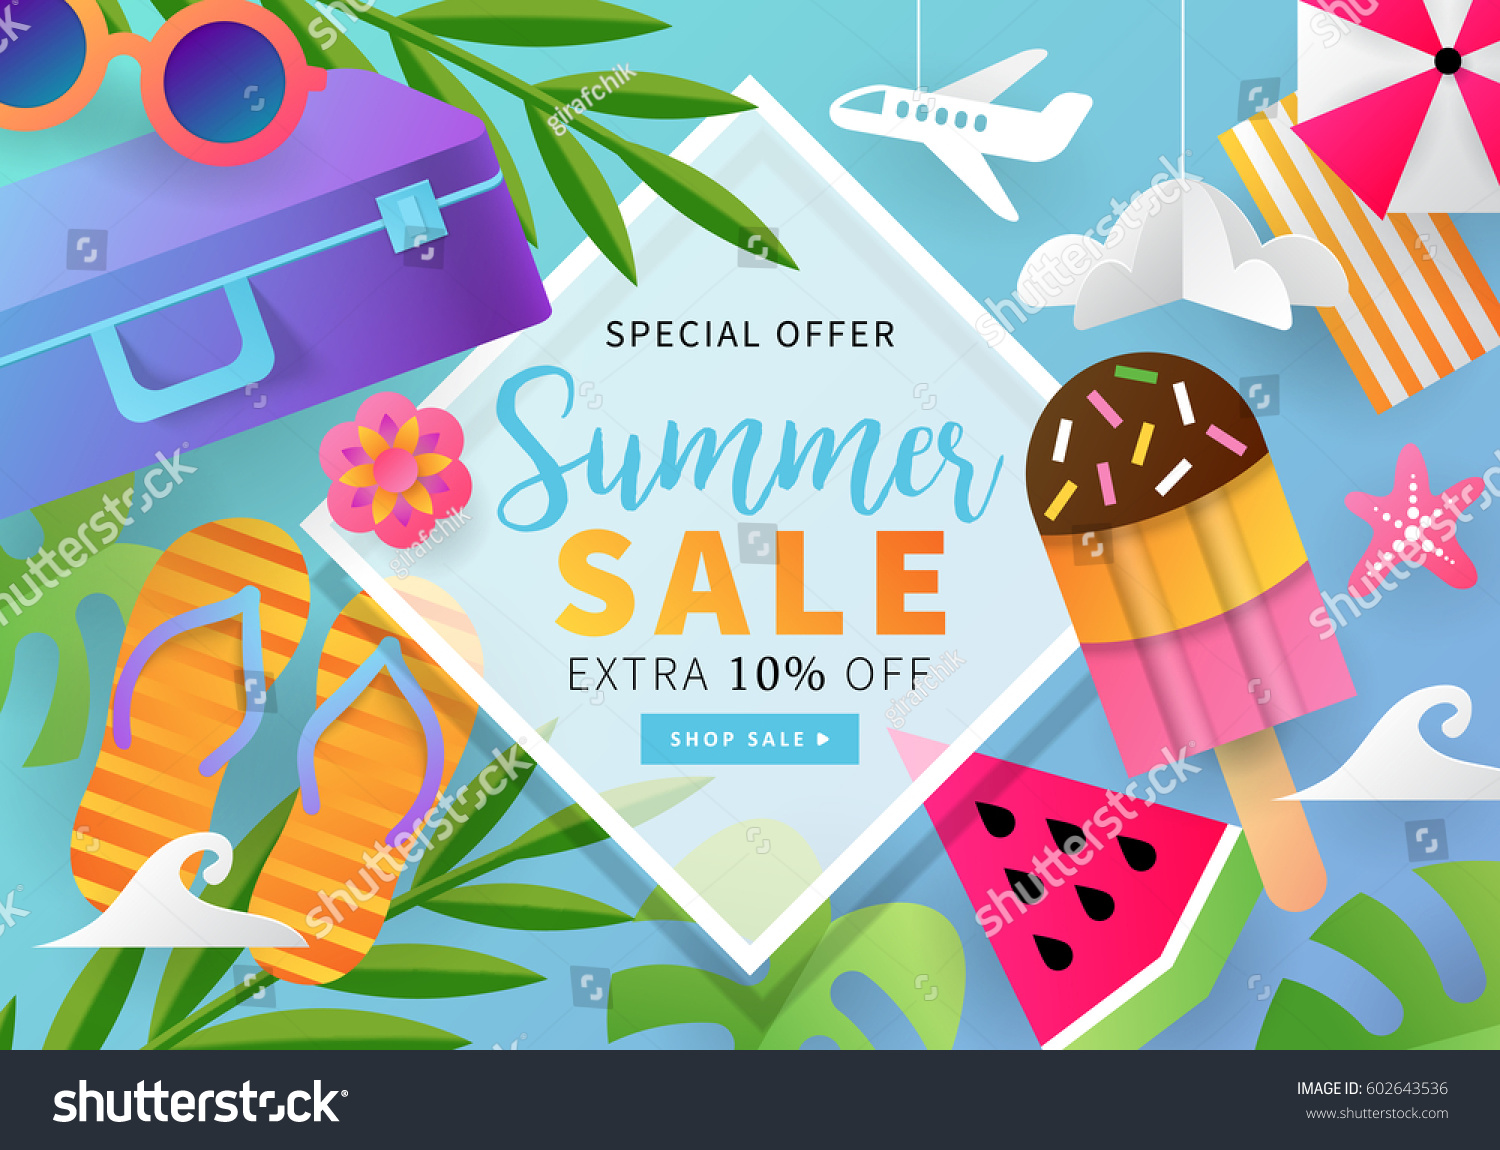 summer sale banner template social media stock vector 602643536 shutterstock. Black Bedroom Furniture Sets. Home Design Ideas